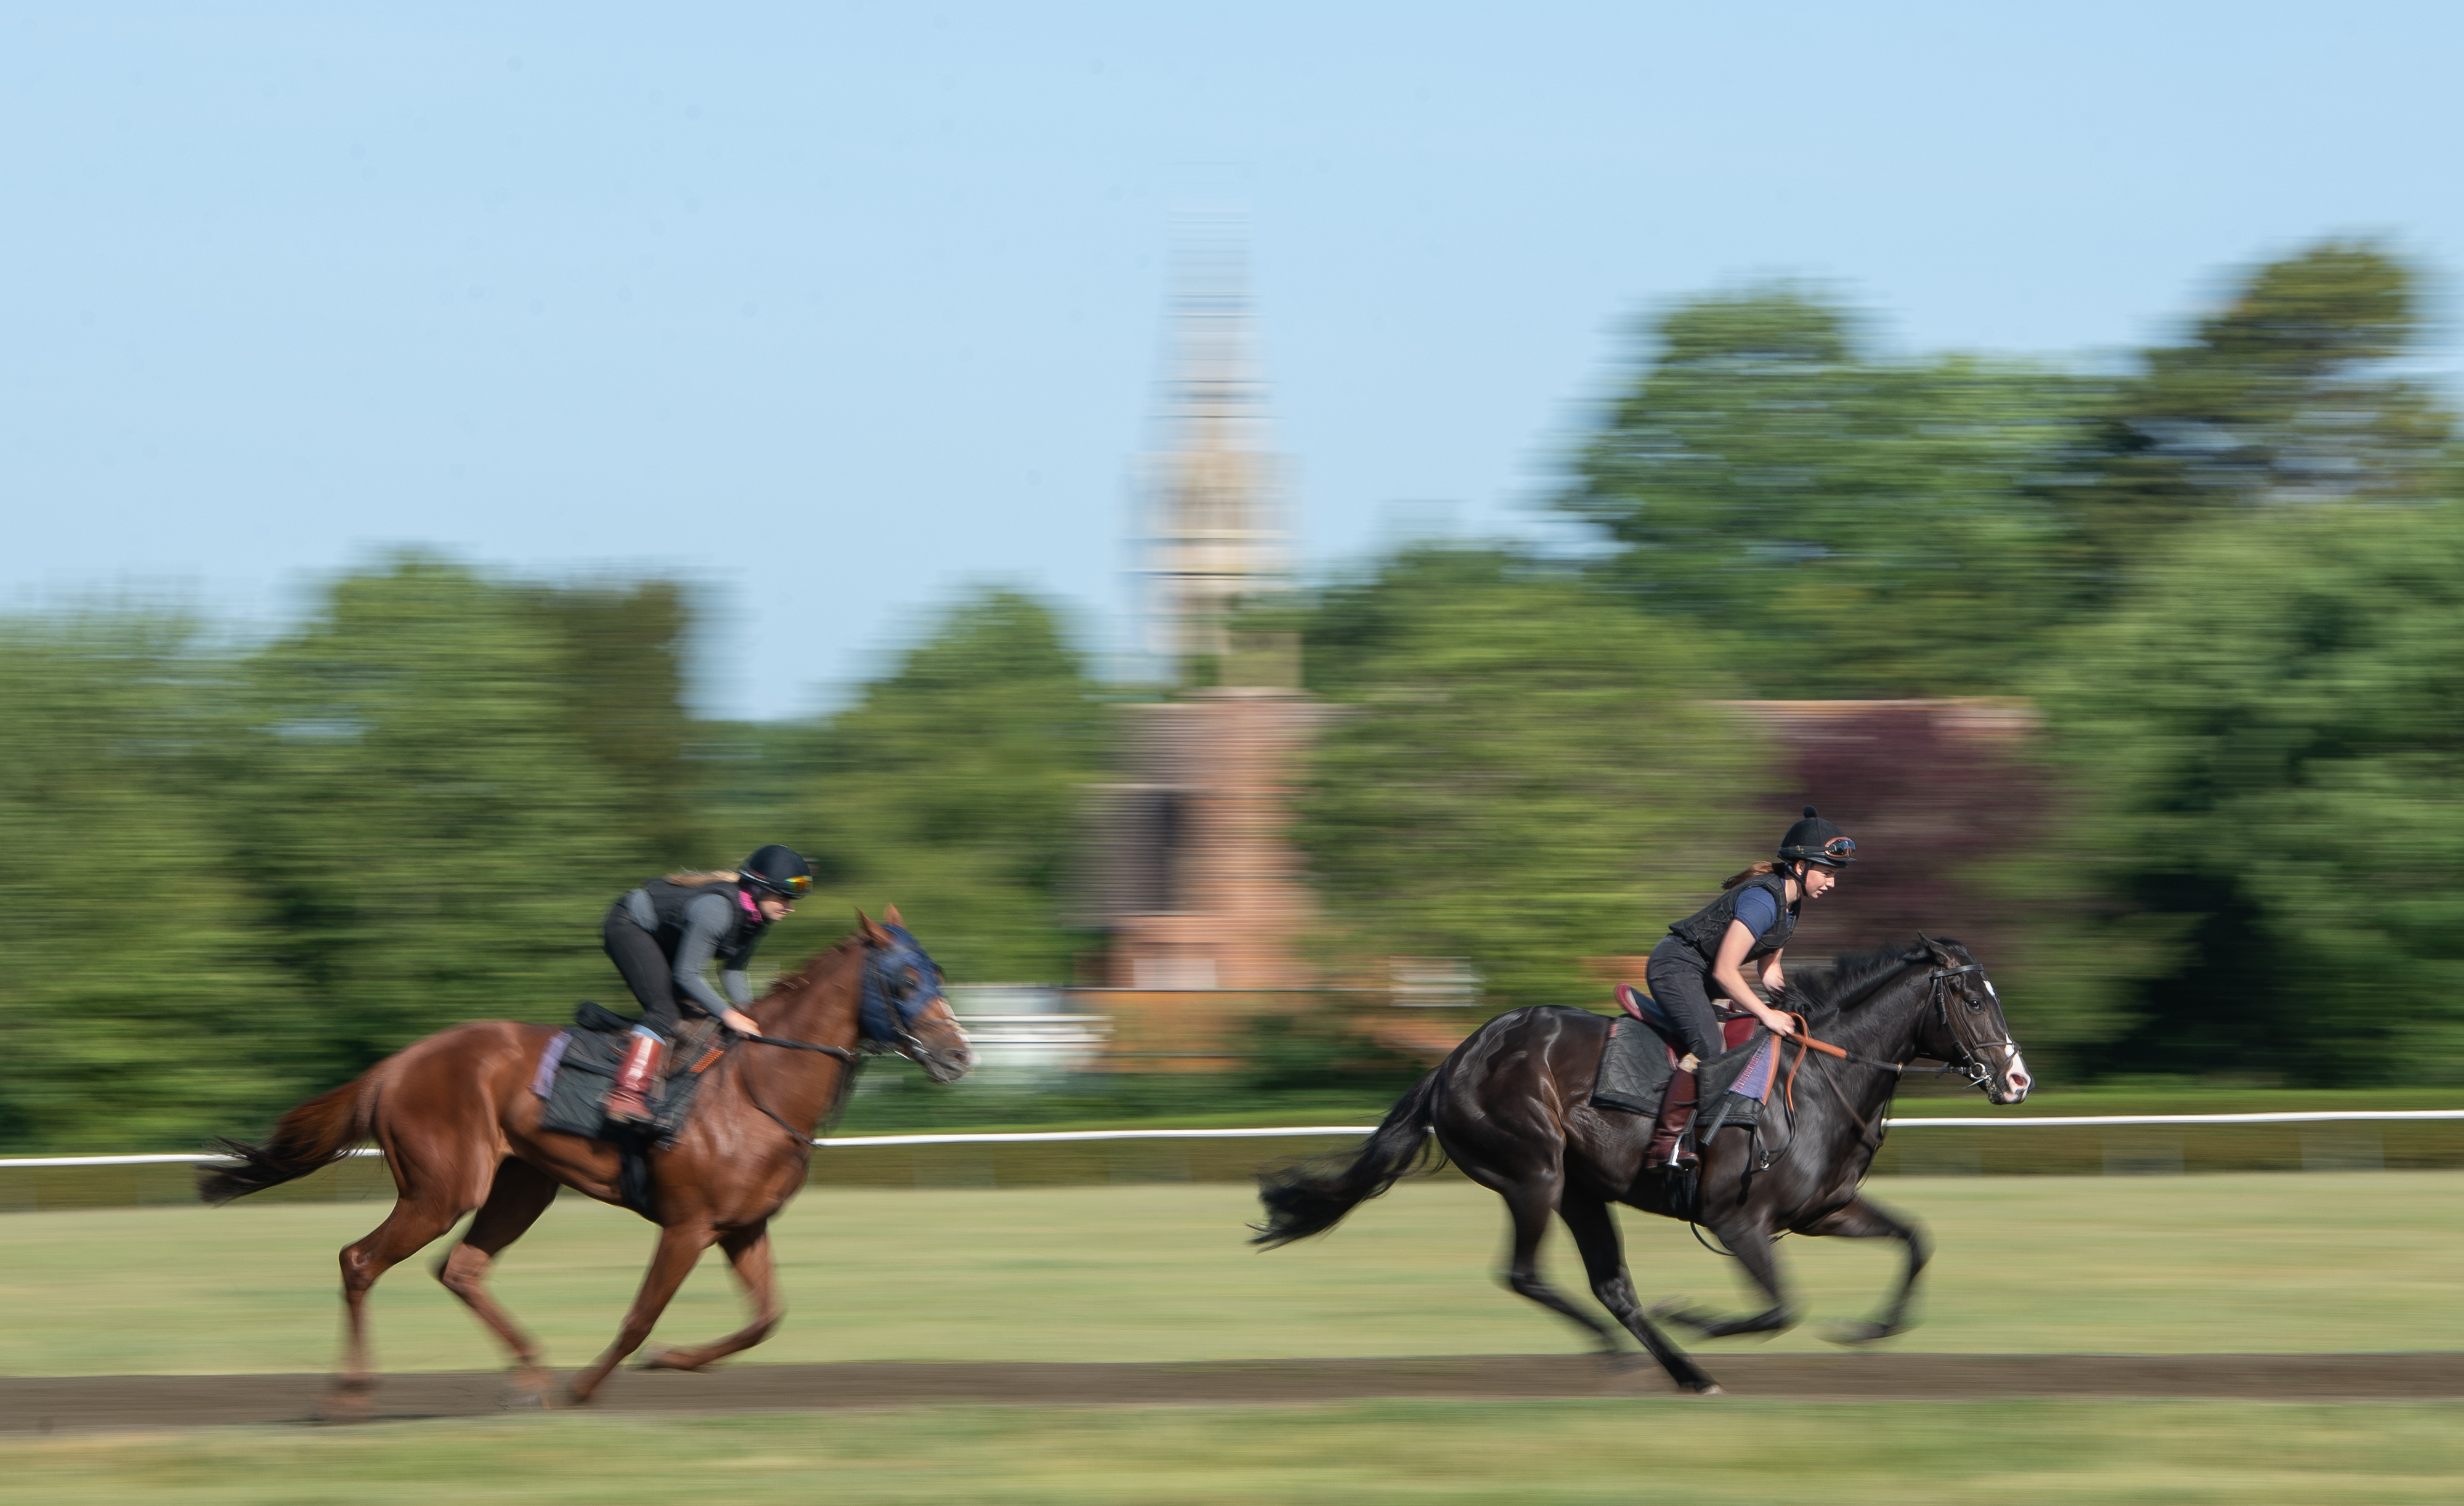 Racehorses on the gallops at Newmarket. (Photo by Joe Giddens/PA Images via Getty Images)